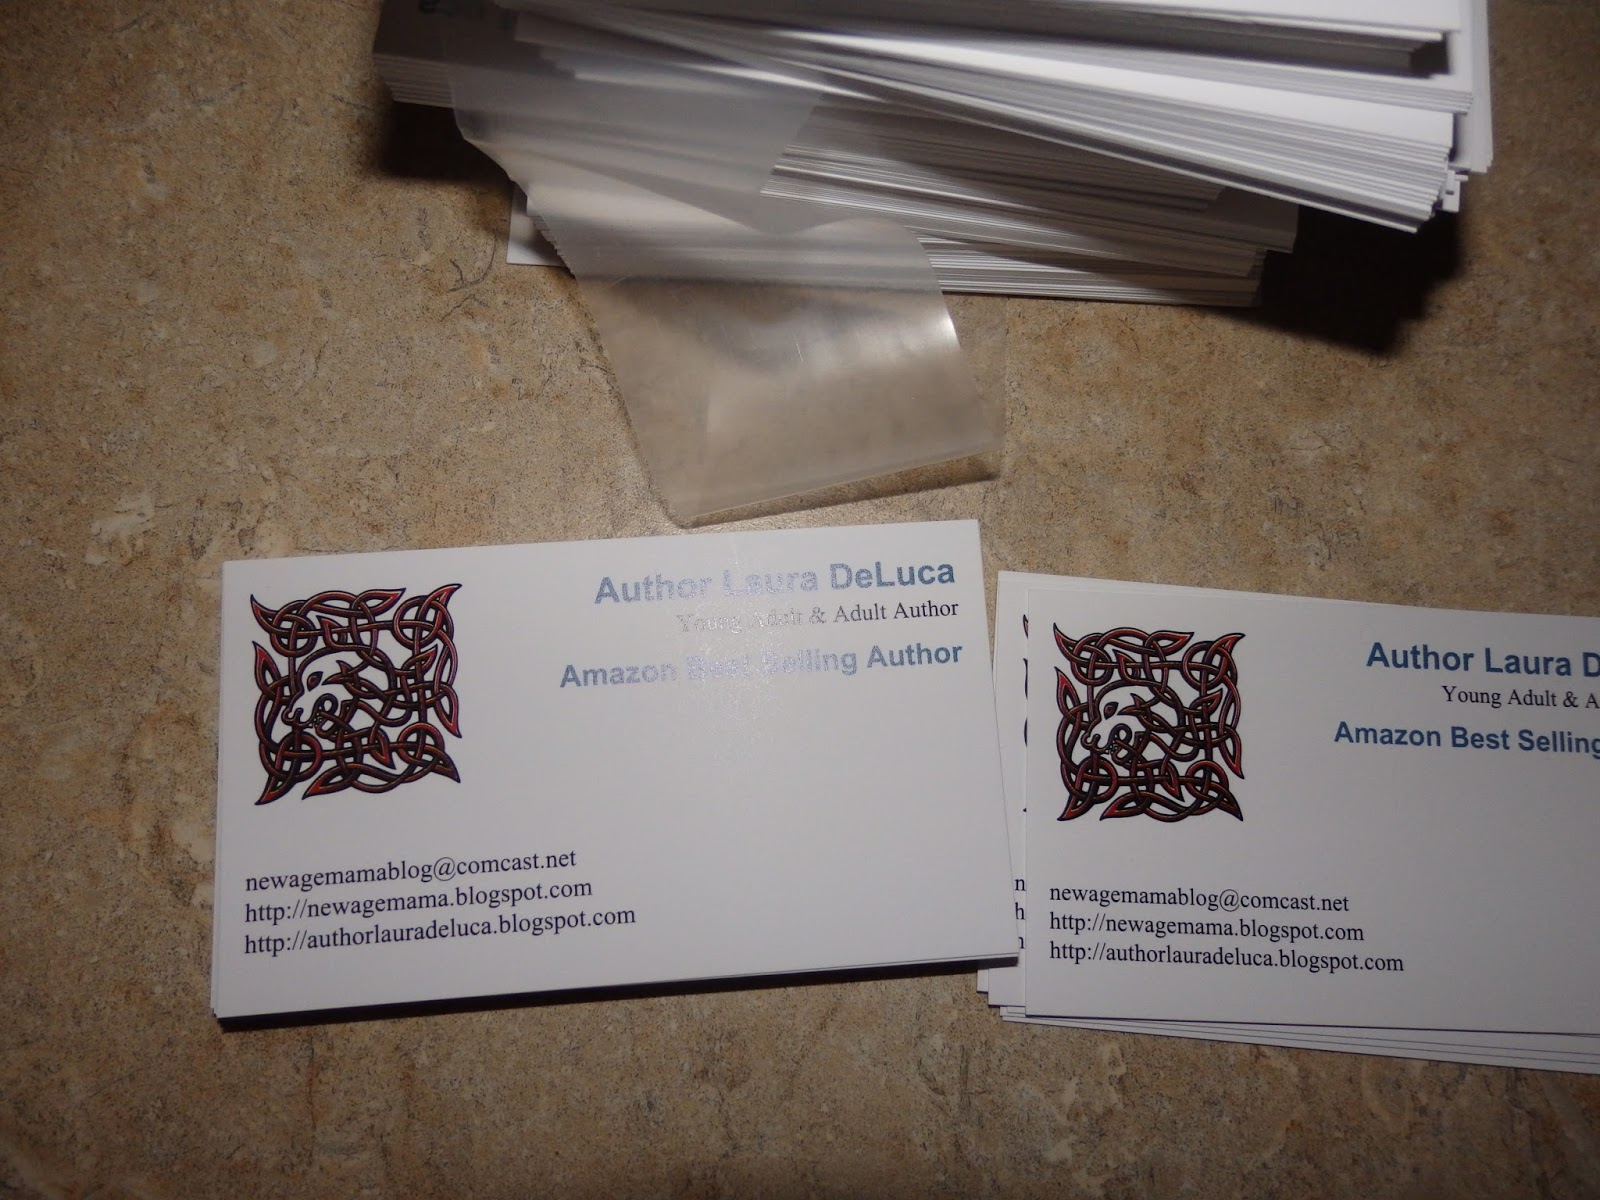 New age mama affordable business cards delivered quick from staples so i hand them my business card and i know it works because the last time i was at the dentist my hygienist pulled my book out of her handbag and asked me reheart